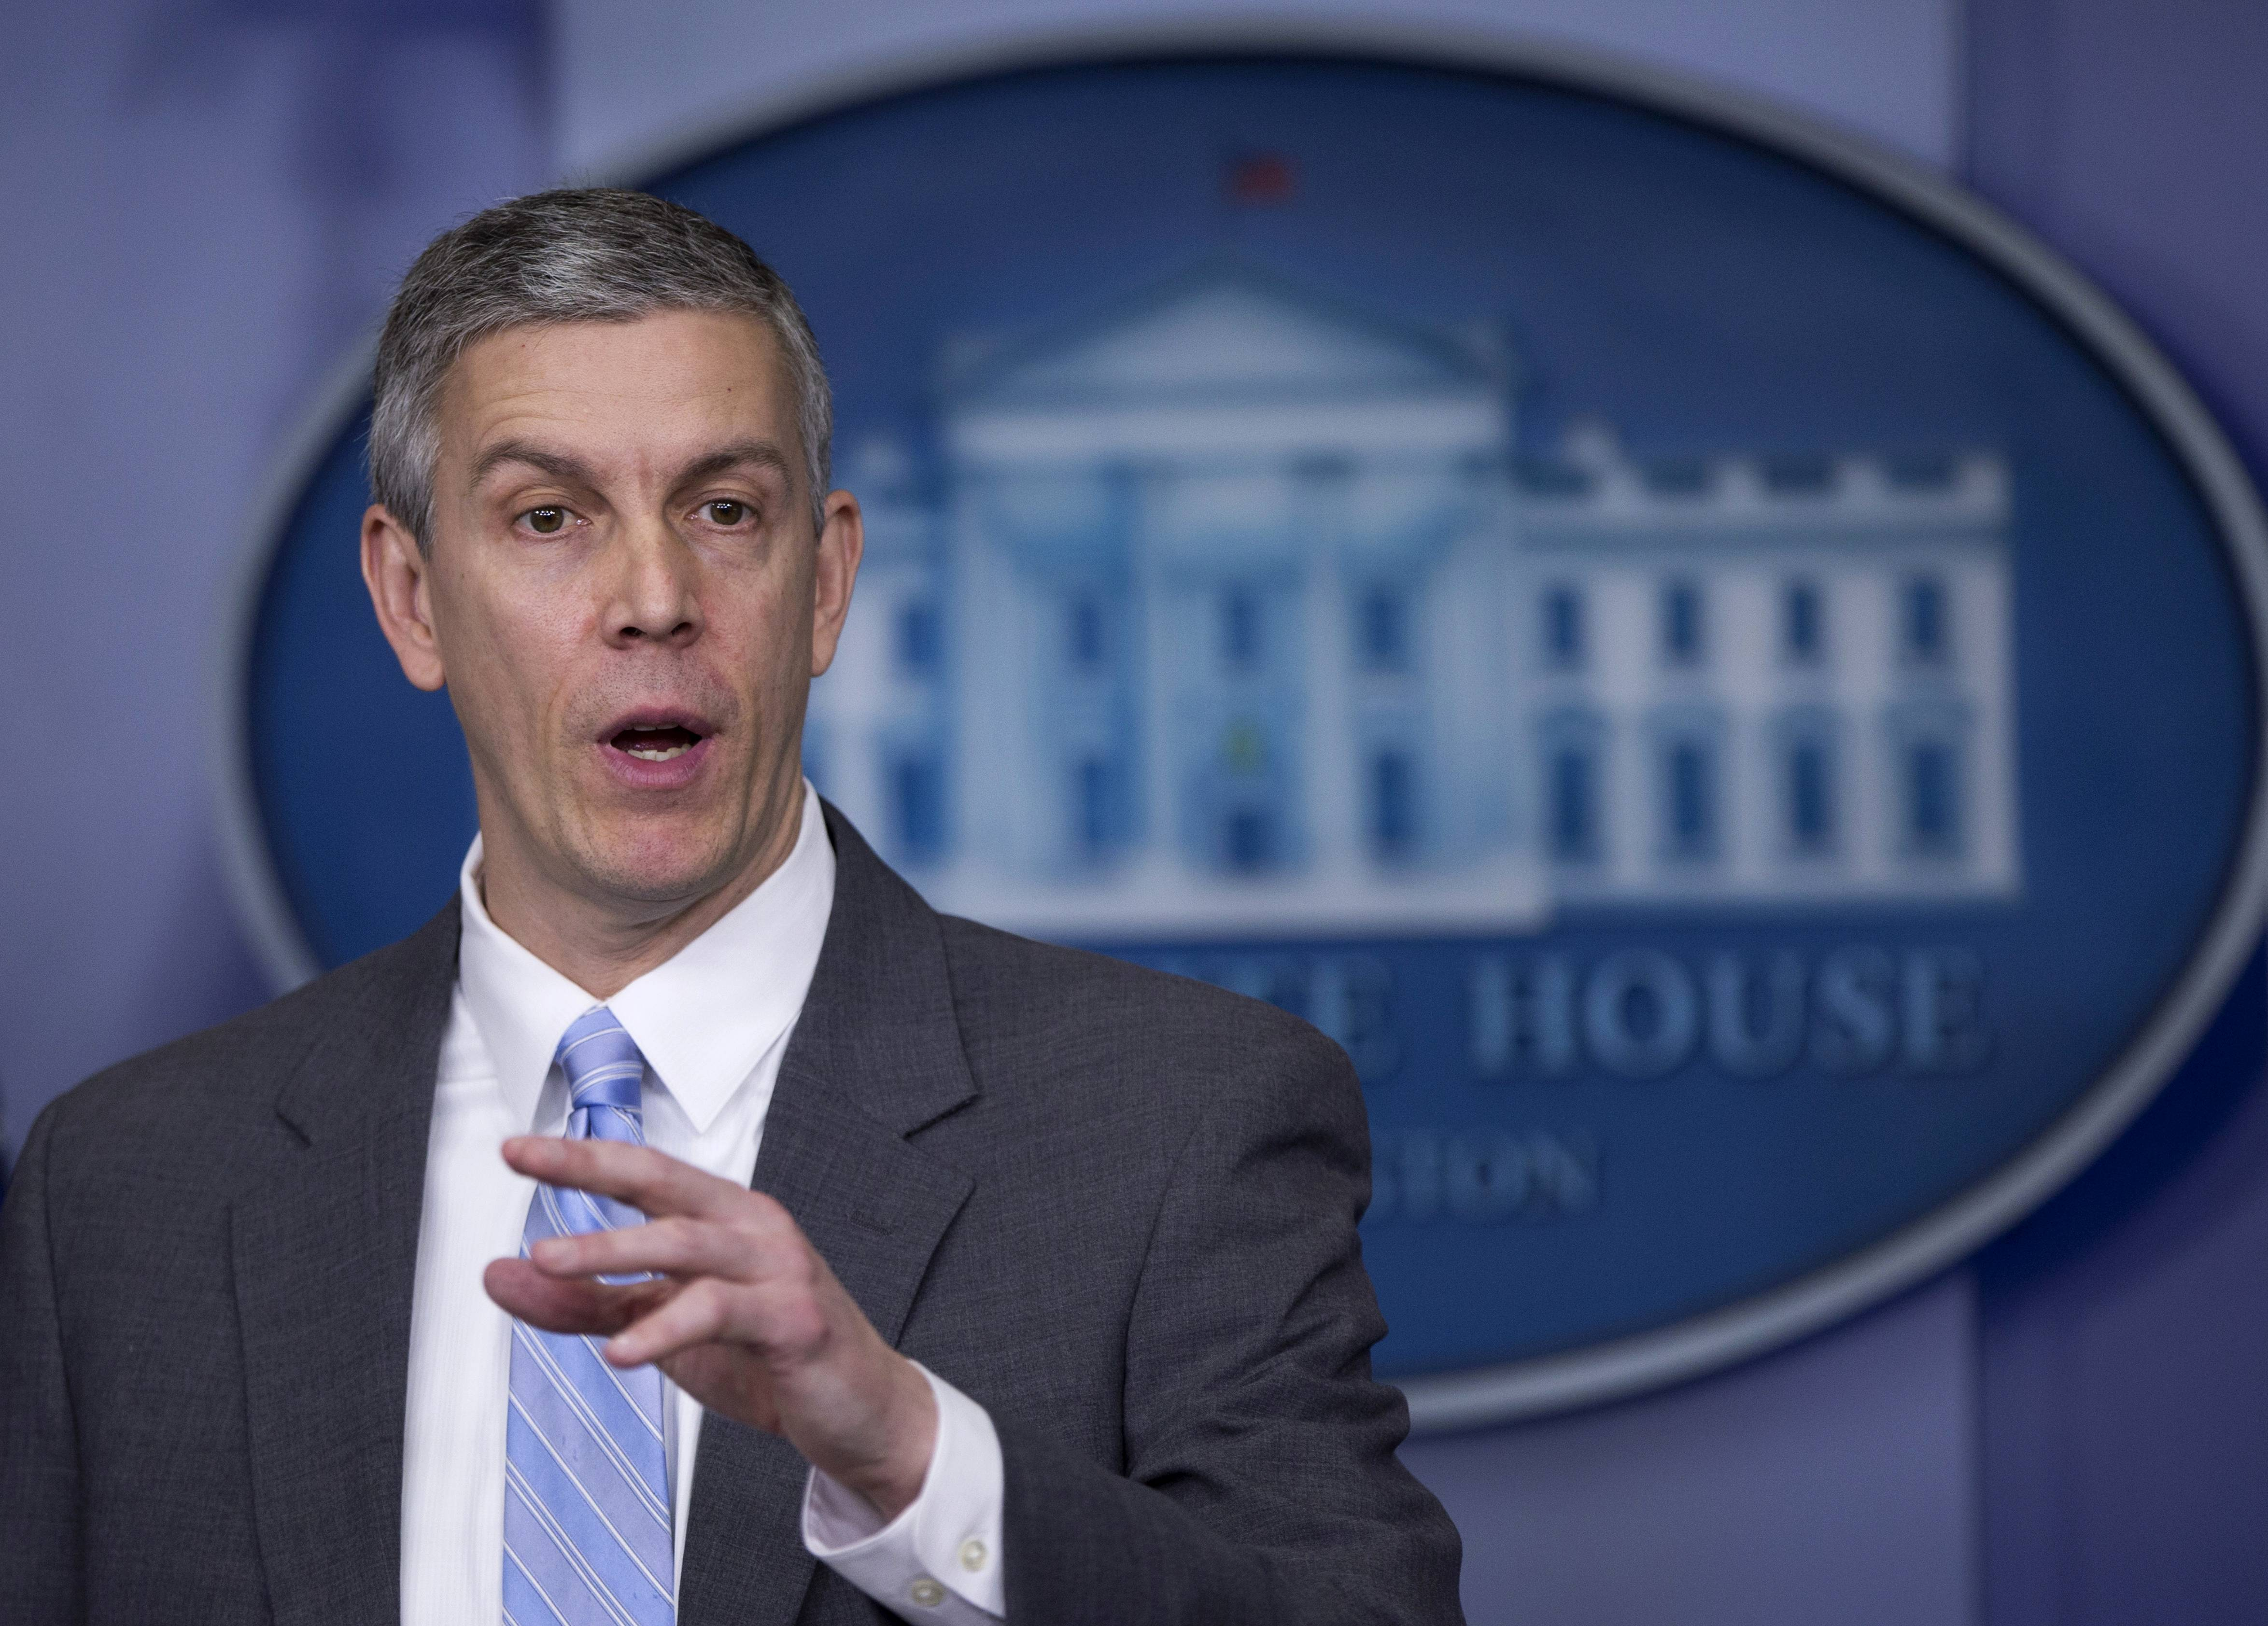 Education Secretary Arne Duncan speaking in the Brady Press Briefing Room of the White House in Washington. Student lender Sallie Mae has reached a $60 million settlement with the federal government to resolve allegations it charged military service members excessive interest rates on their student loans.